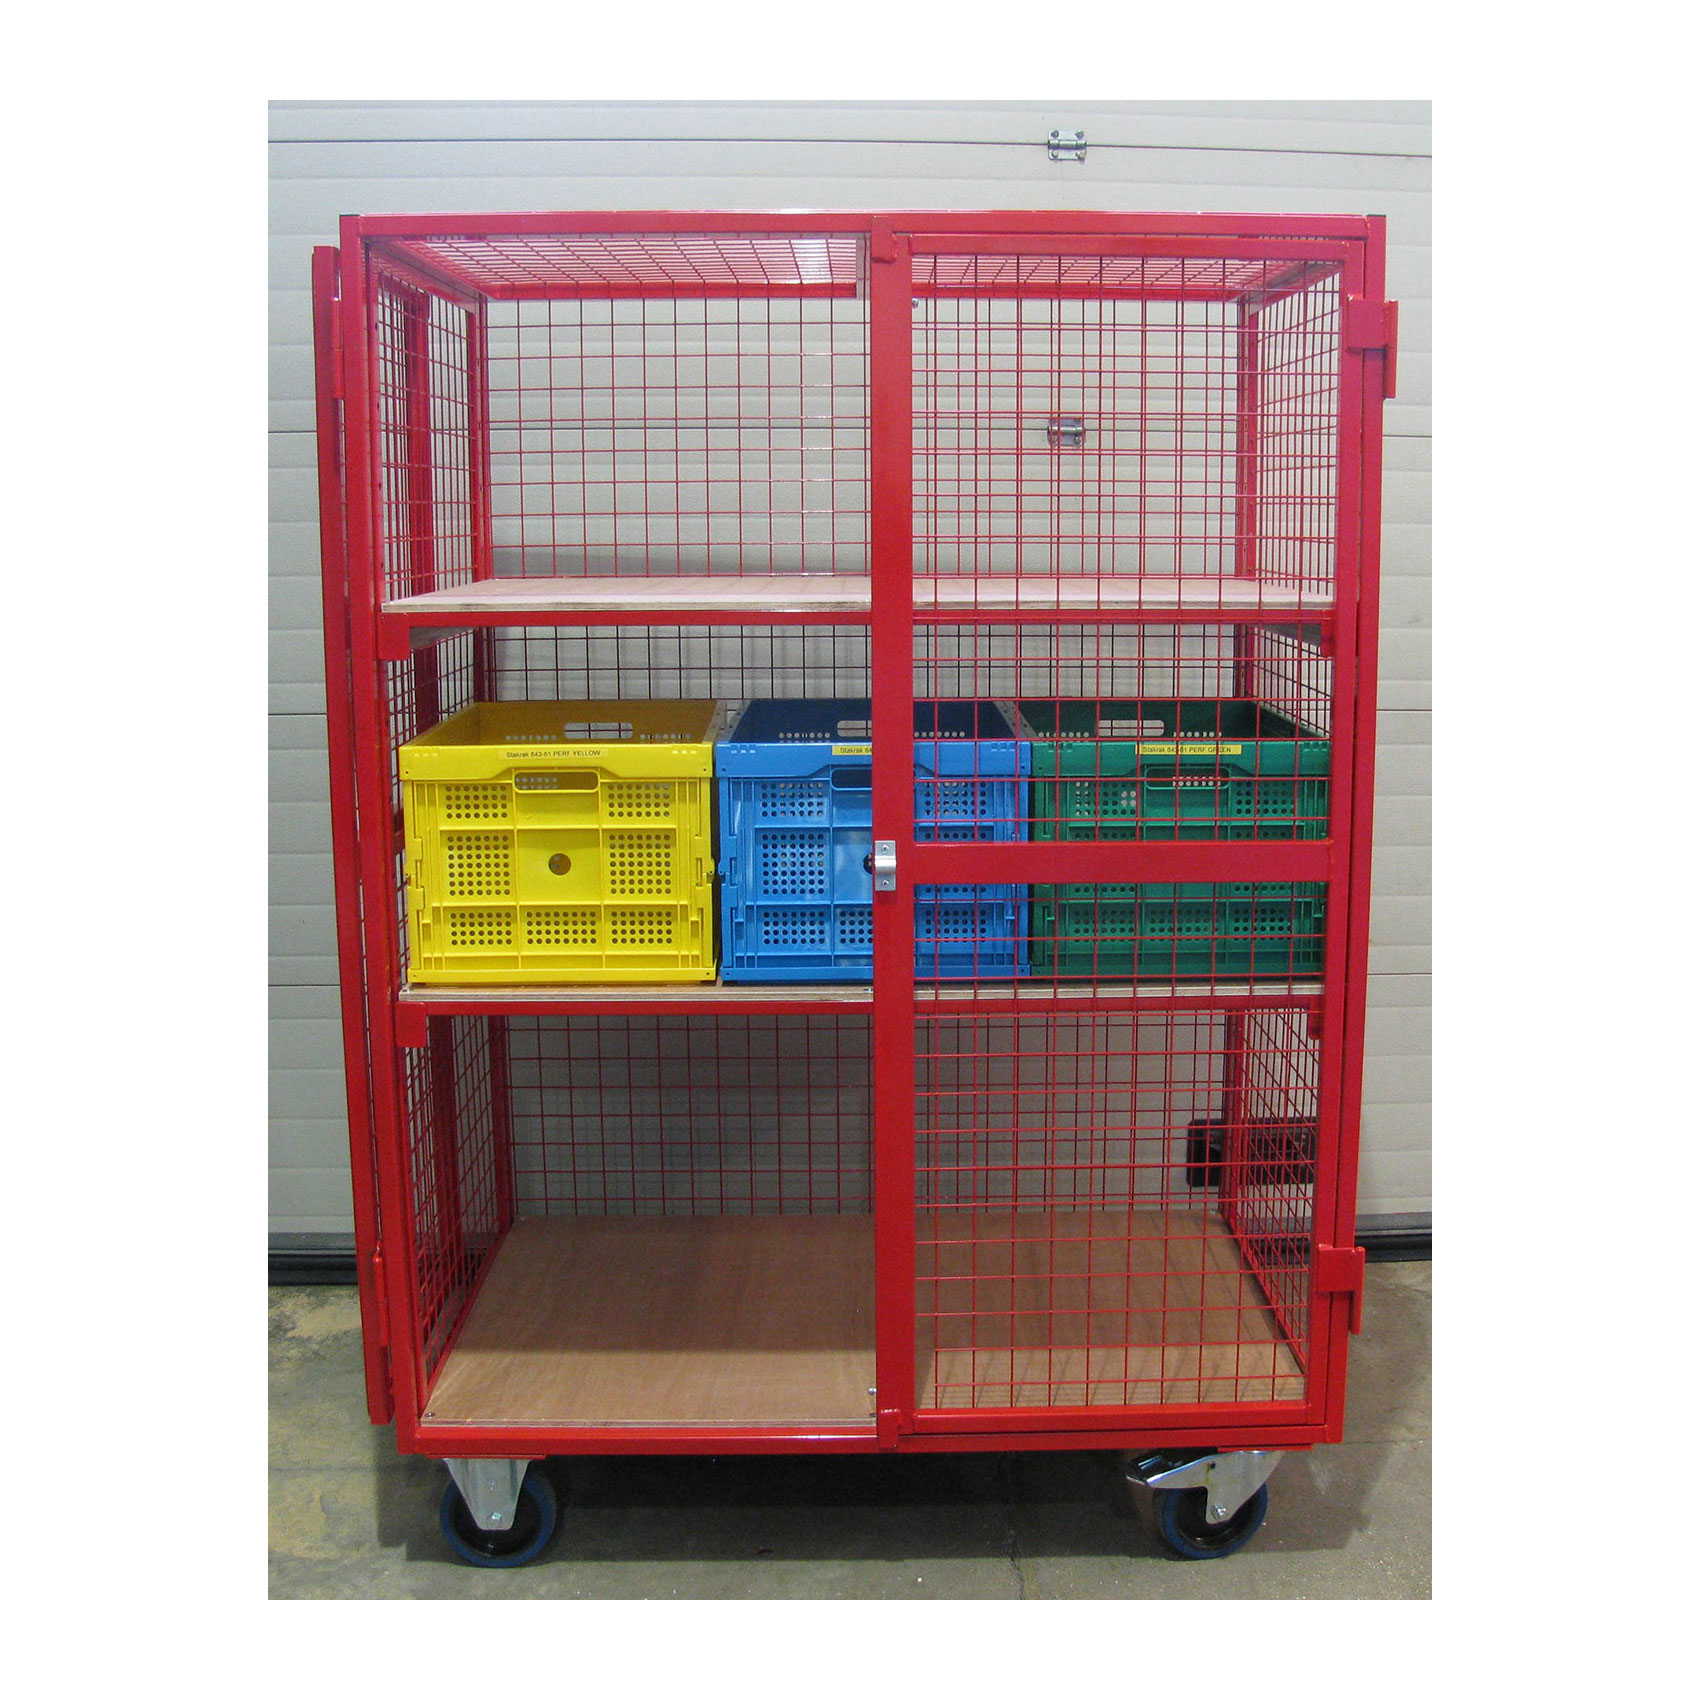 Air Conditioning Security Cages for Pinterest #B2A719